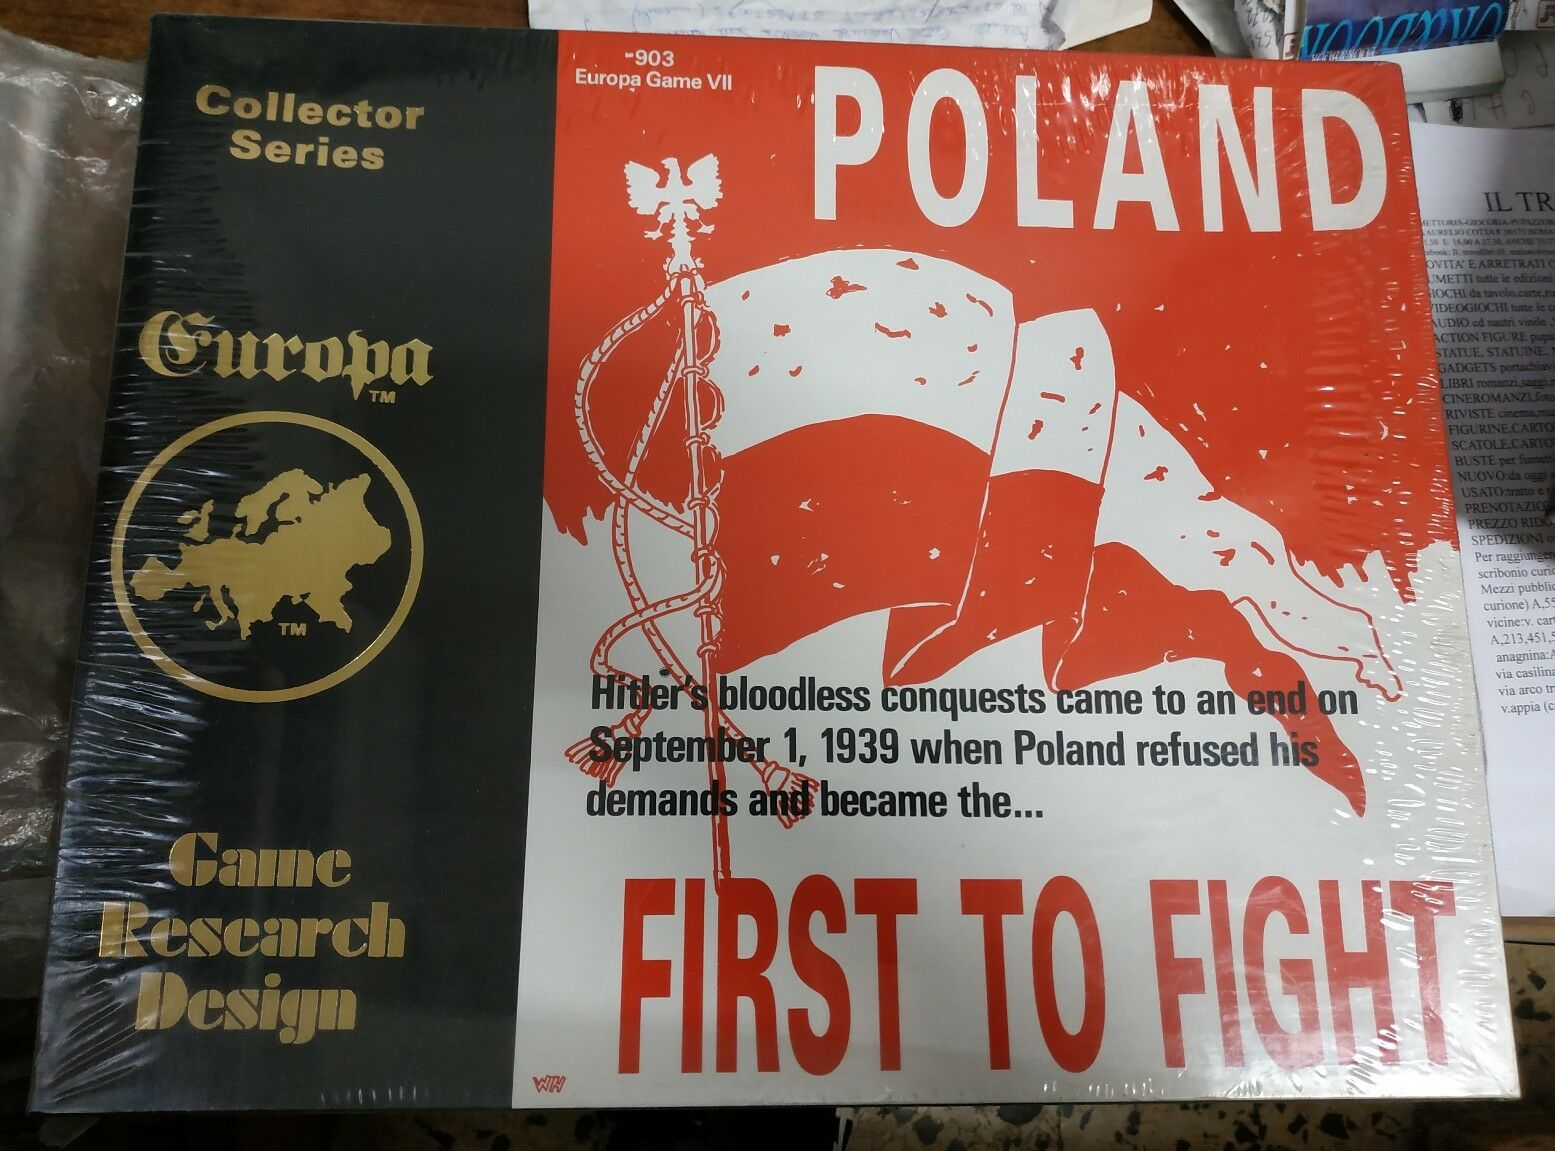 Poland First to Fight 903 Europa Game Game Game VII GRD Collector Series Game Designers' a07de4